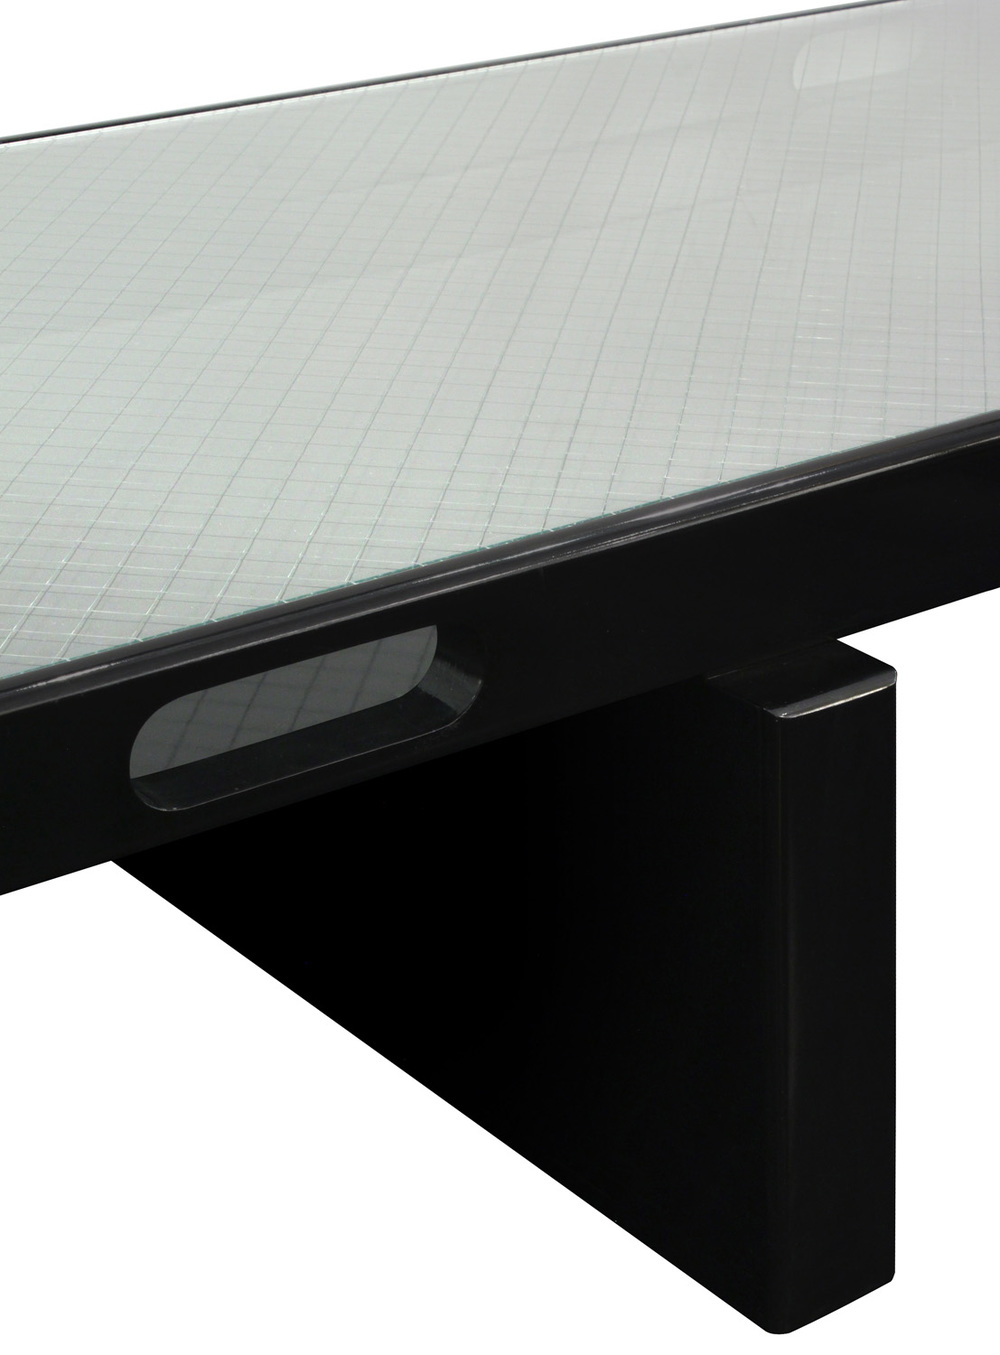 Montoya 95  blk lqr+wire glass top coffeetable385 detail2 hires.jpg